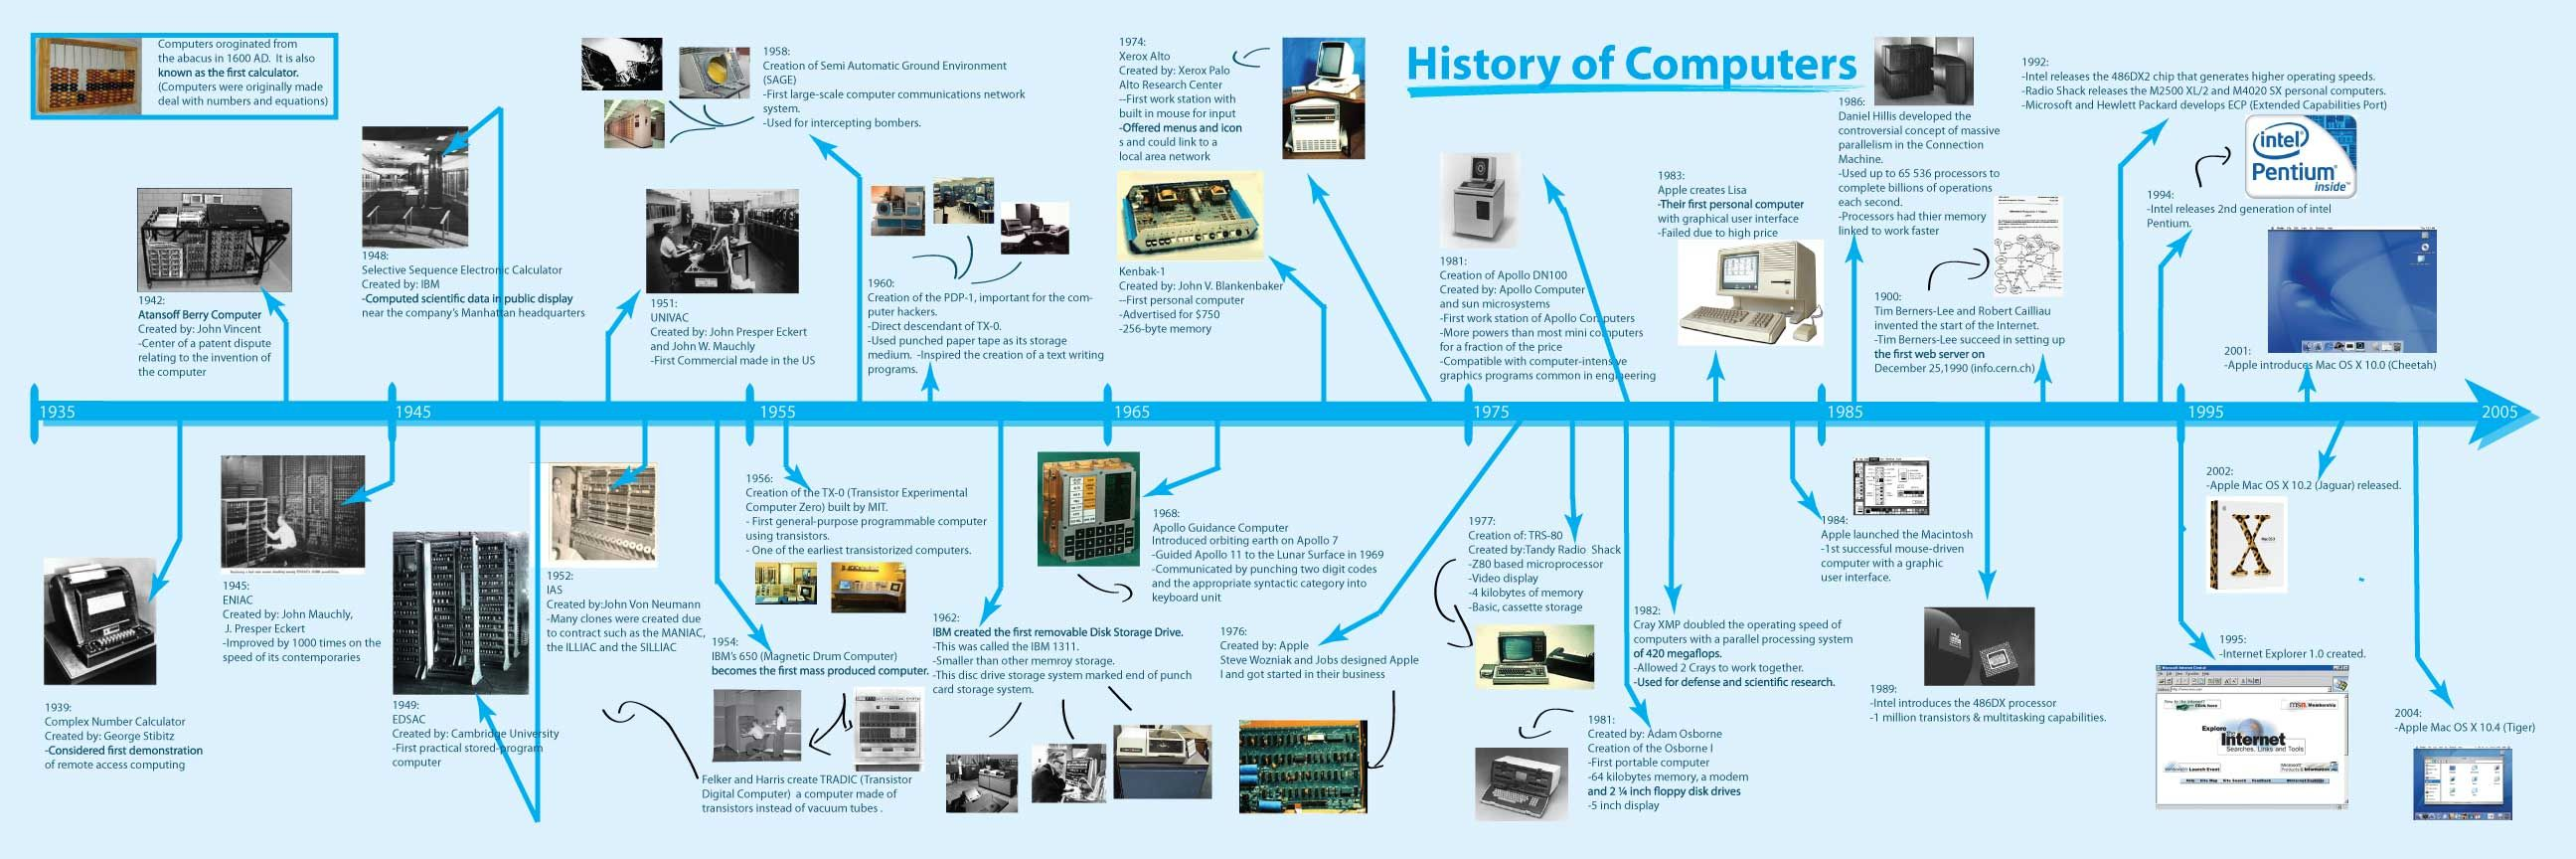 computerhistorygroup6.jpeg 2,592×864 pixels Timeline